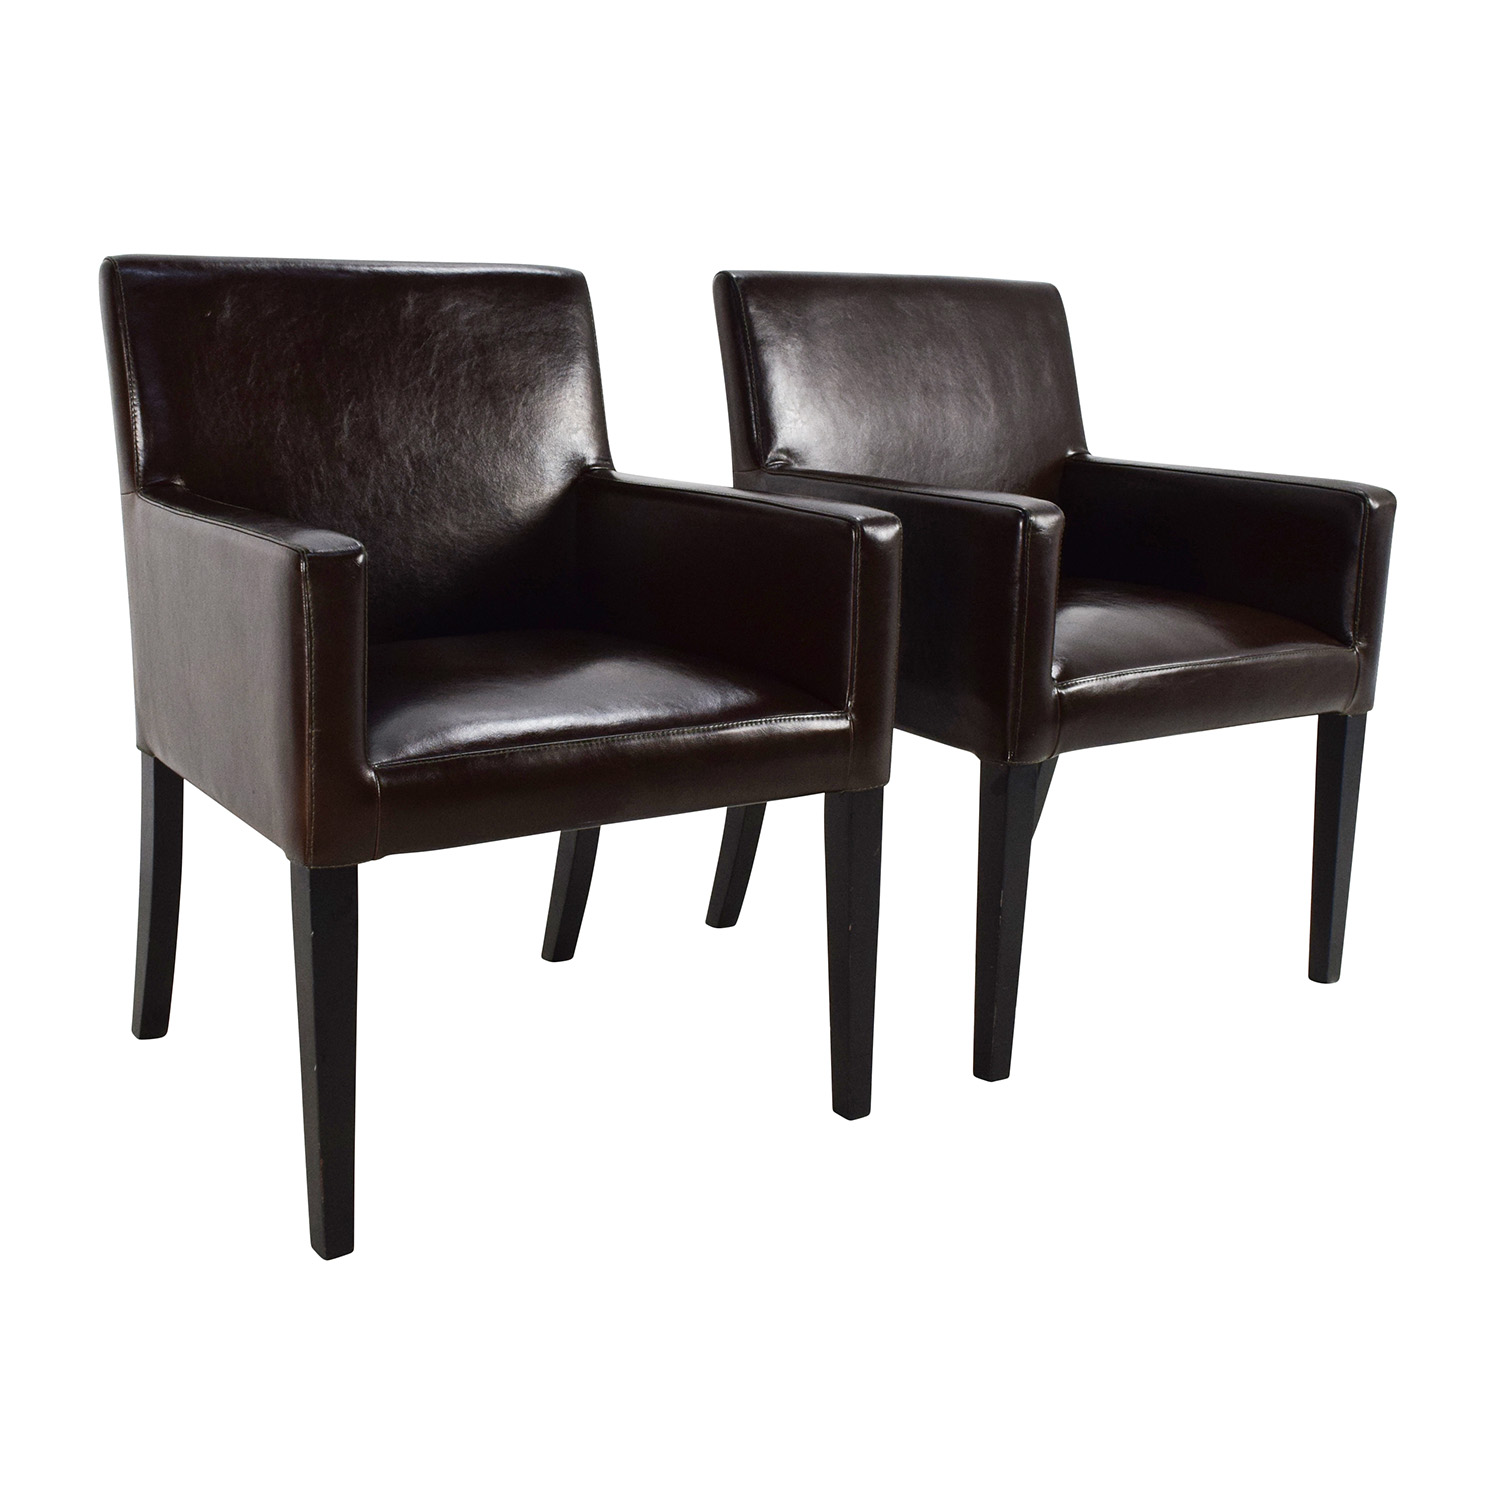 82 off black leather office chairs chairs for Furniture for the home